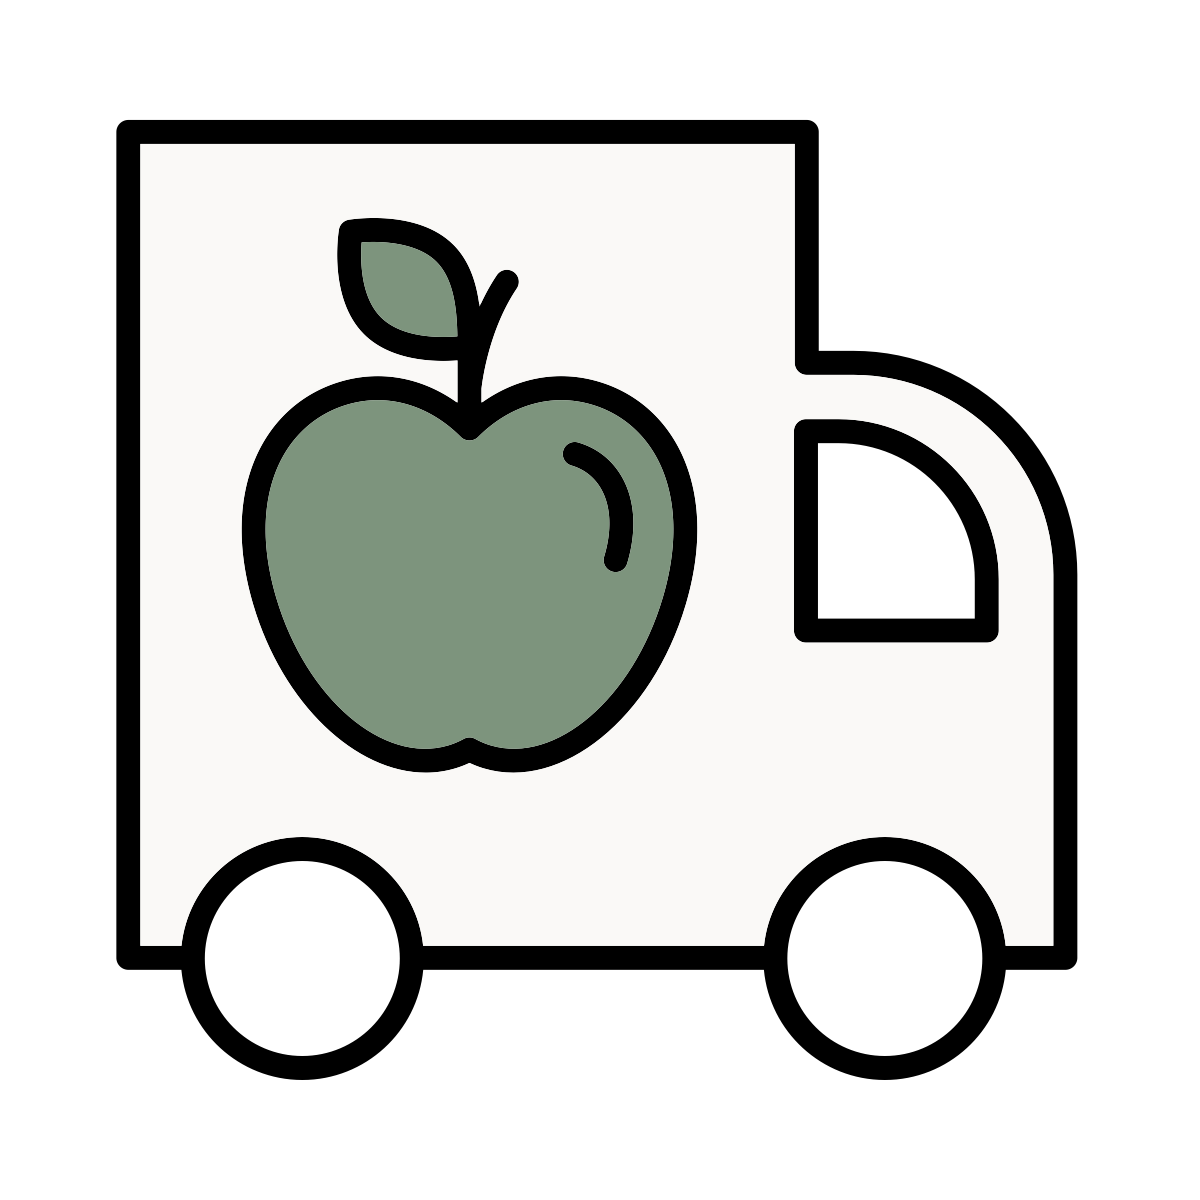 Local Food Market Co Delivery Truck - online groceries - fruit and veg delivery - grocery shopping online - grocery delivery melbourne - online food shopping - fruit delivery - fruit delivery melbourne - fruit and vegetable delivery - food shopping online - melbourne grocery stores